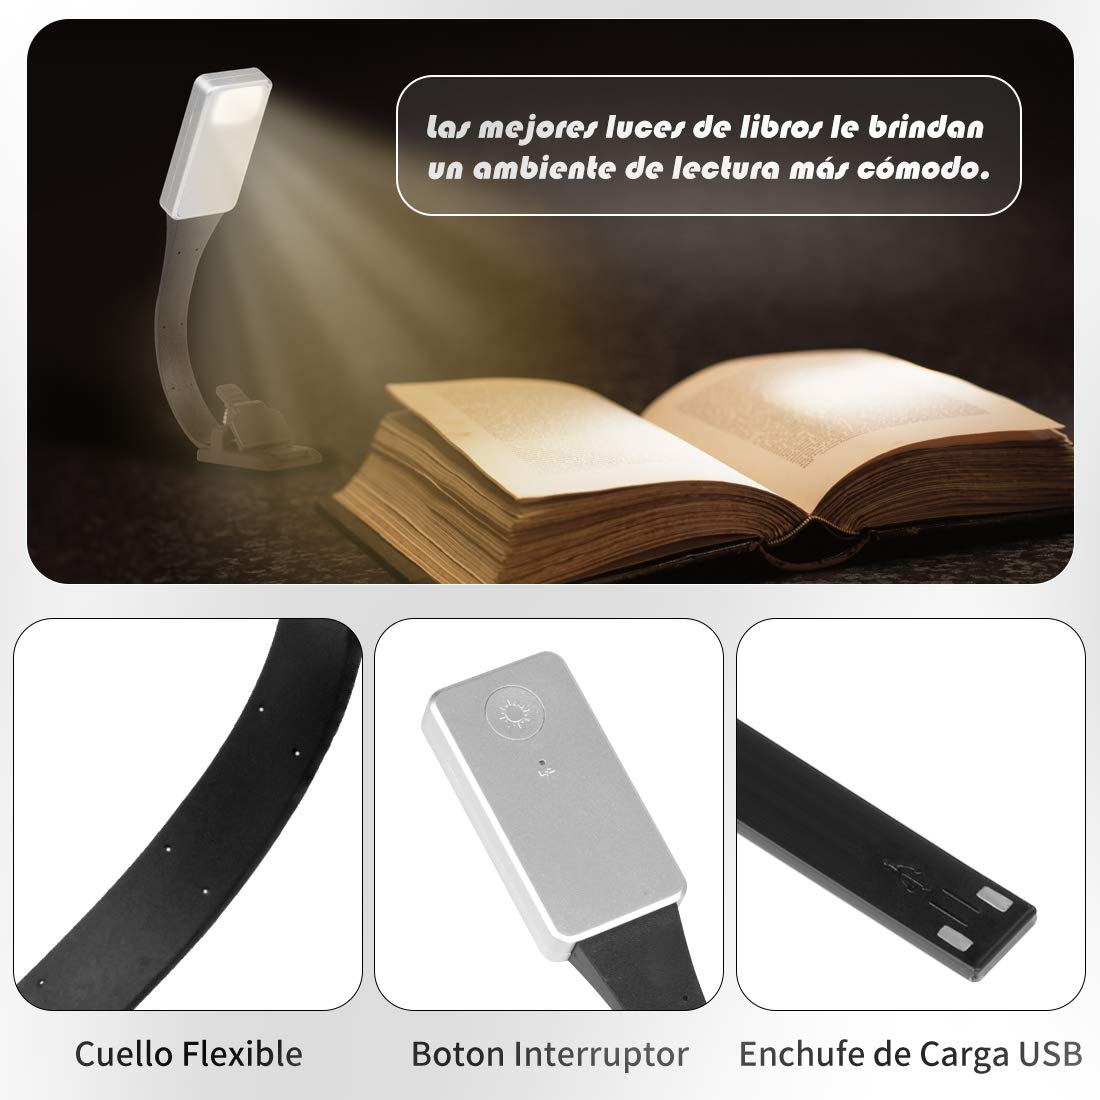 Gocheer Book Light Clip On, cuidado de los ojos Luz de lectura con brillo de temperatura de color ajustable, marcador USB Lamp Clips dobles para Kindle de libros en la noche